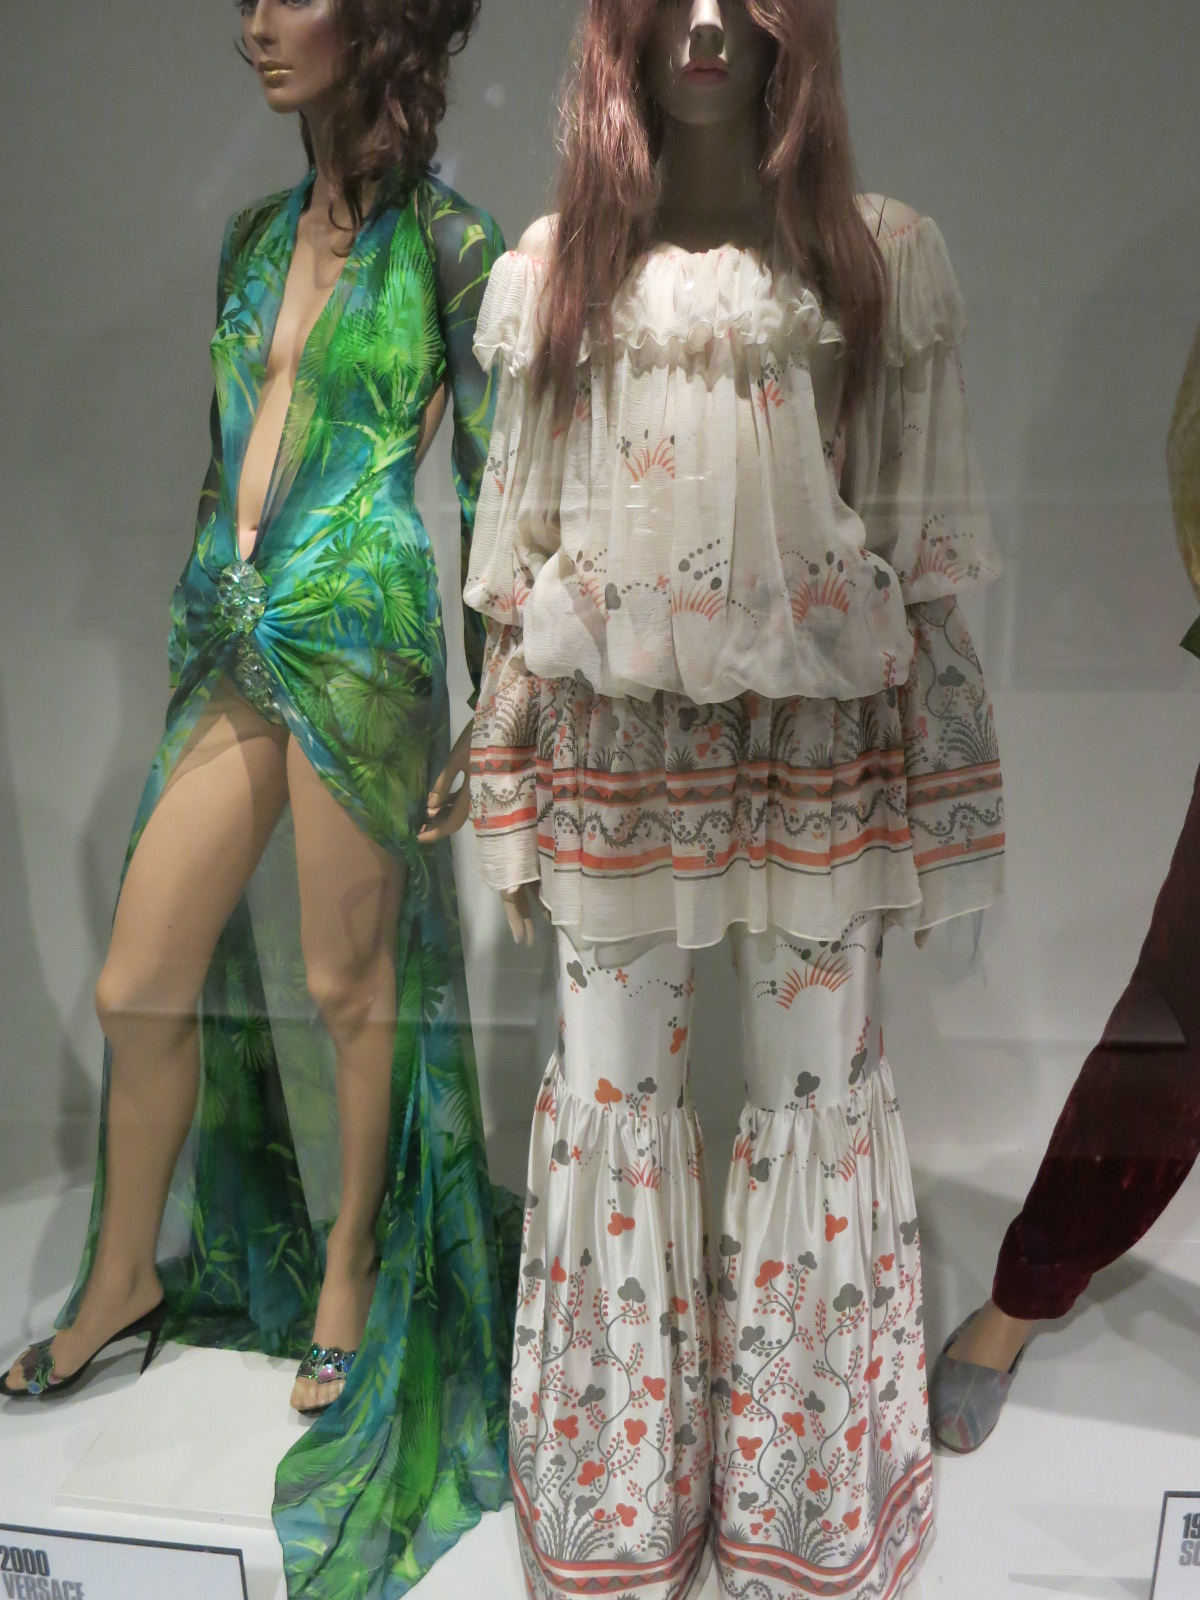 'Dress of the Year' Bath Fashion Museum - Ossie Clerk & Celia Birtwell's ensemble was 'Dress of the Year' in 1969